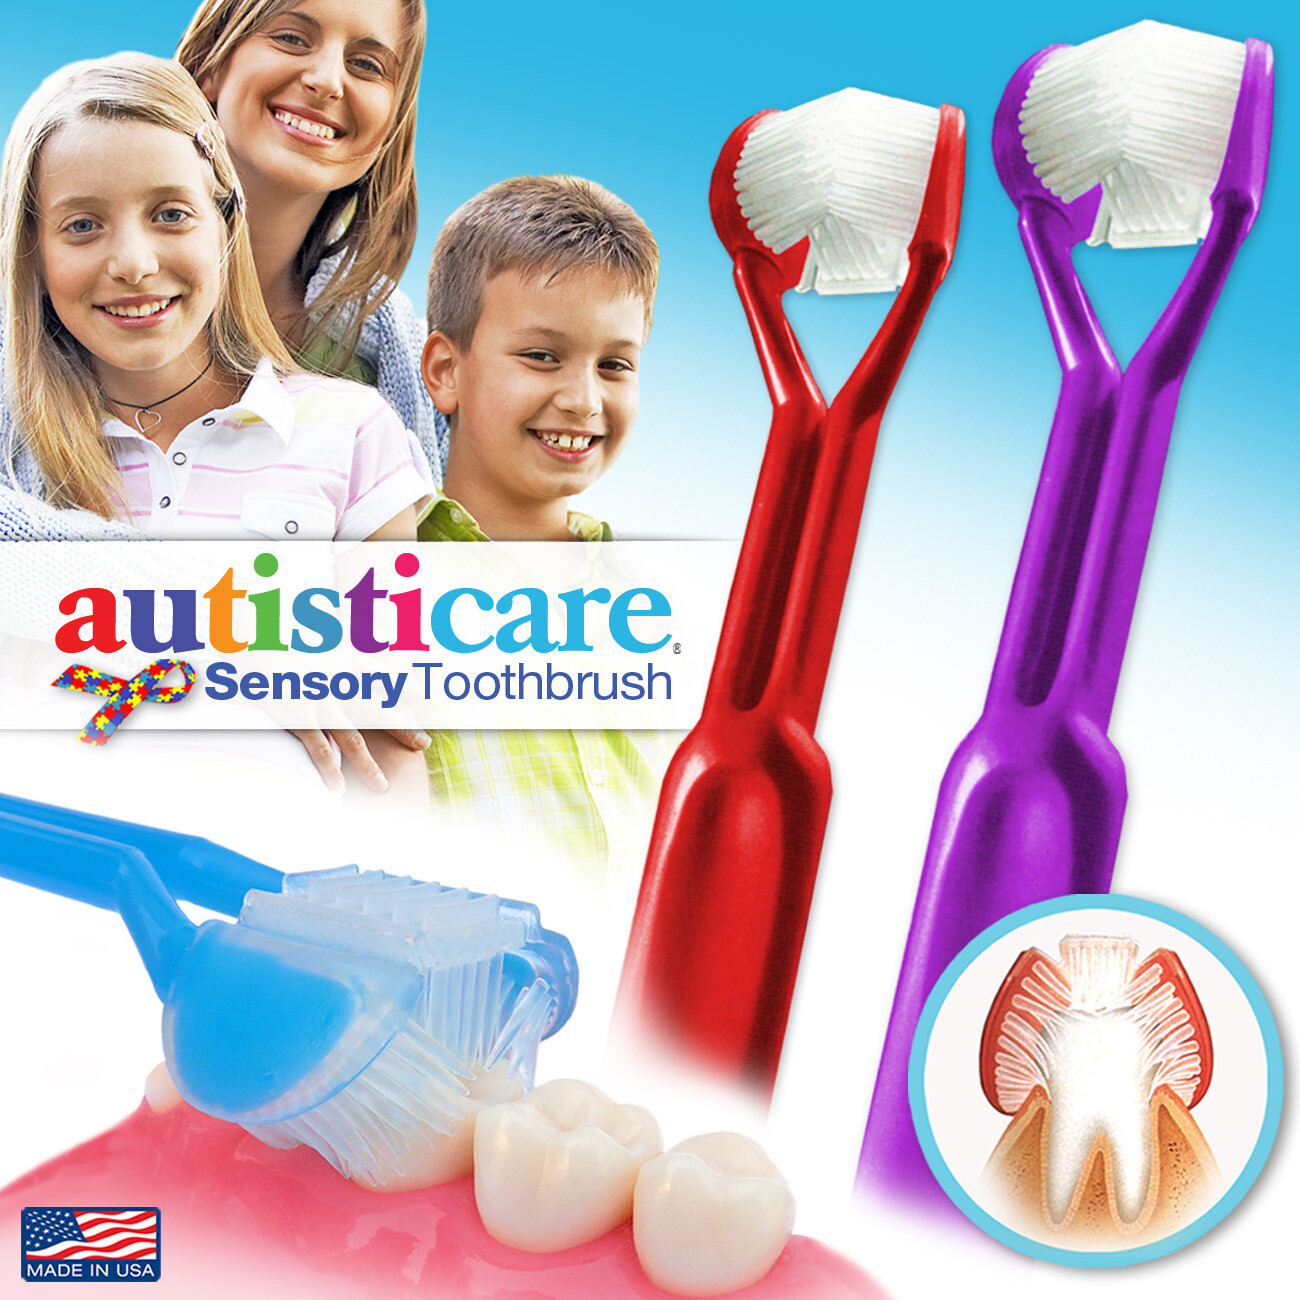 2-PK | DenTrust Autisticare | The Only Child-Safe 3-Sided Toothbrush | Made in USA | Fast, Easy & Clinically Proven | Special Needs Autism Autistic Asperger Therapy Caregiver Tactile Sensory Calming